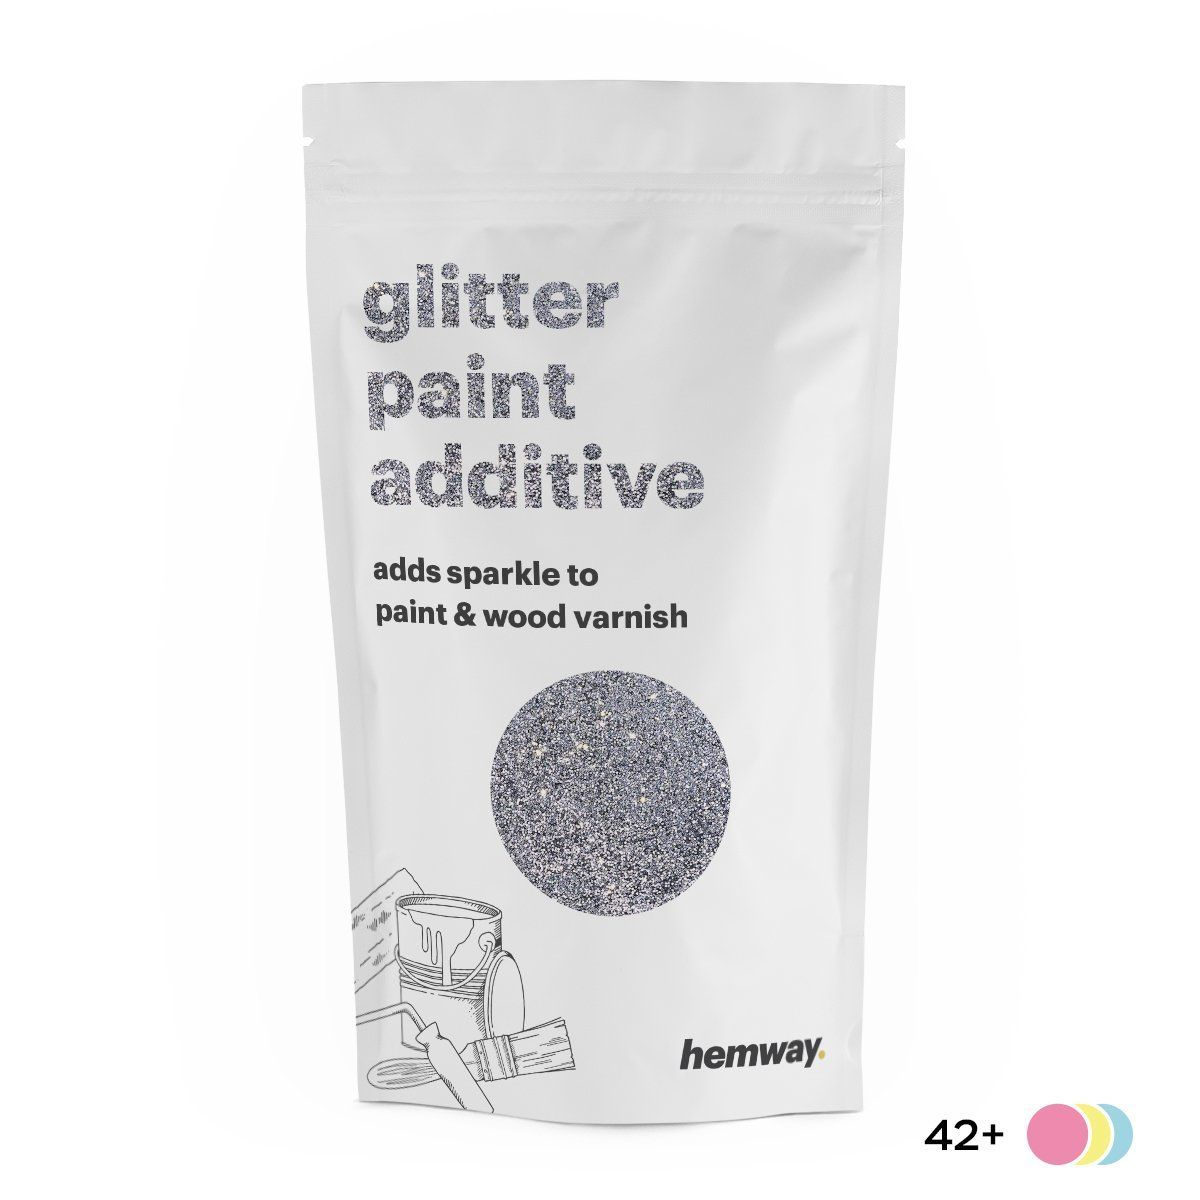 Get Good Black Wallpaper Iphone Glitter Sparkle for iPhone XR 2020